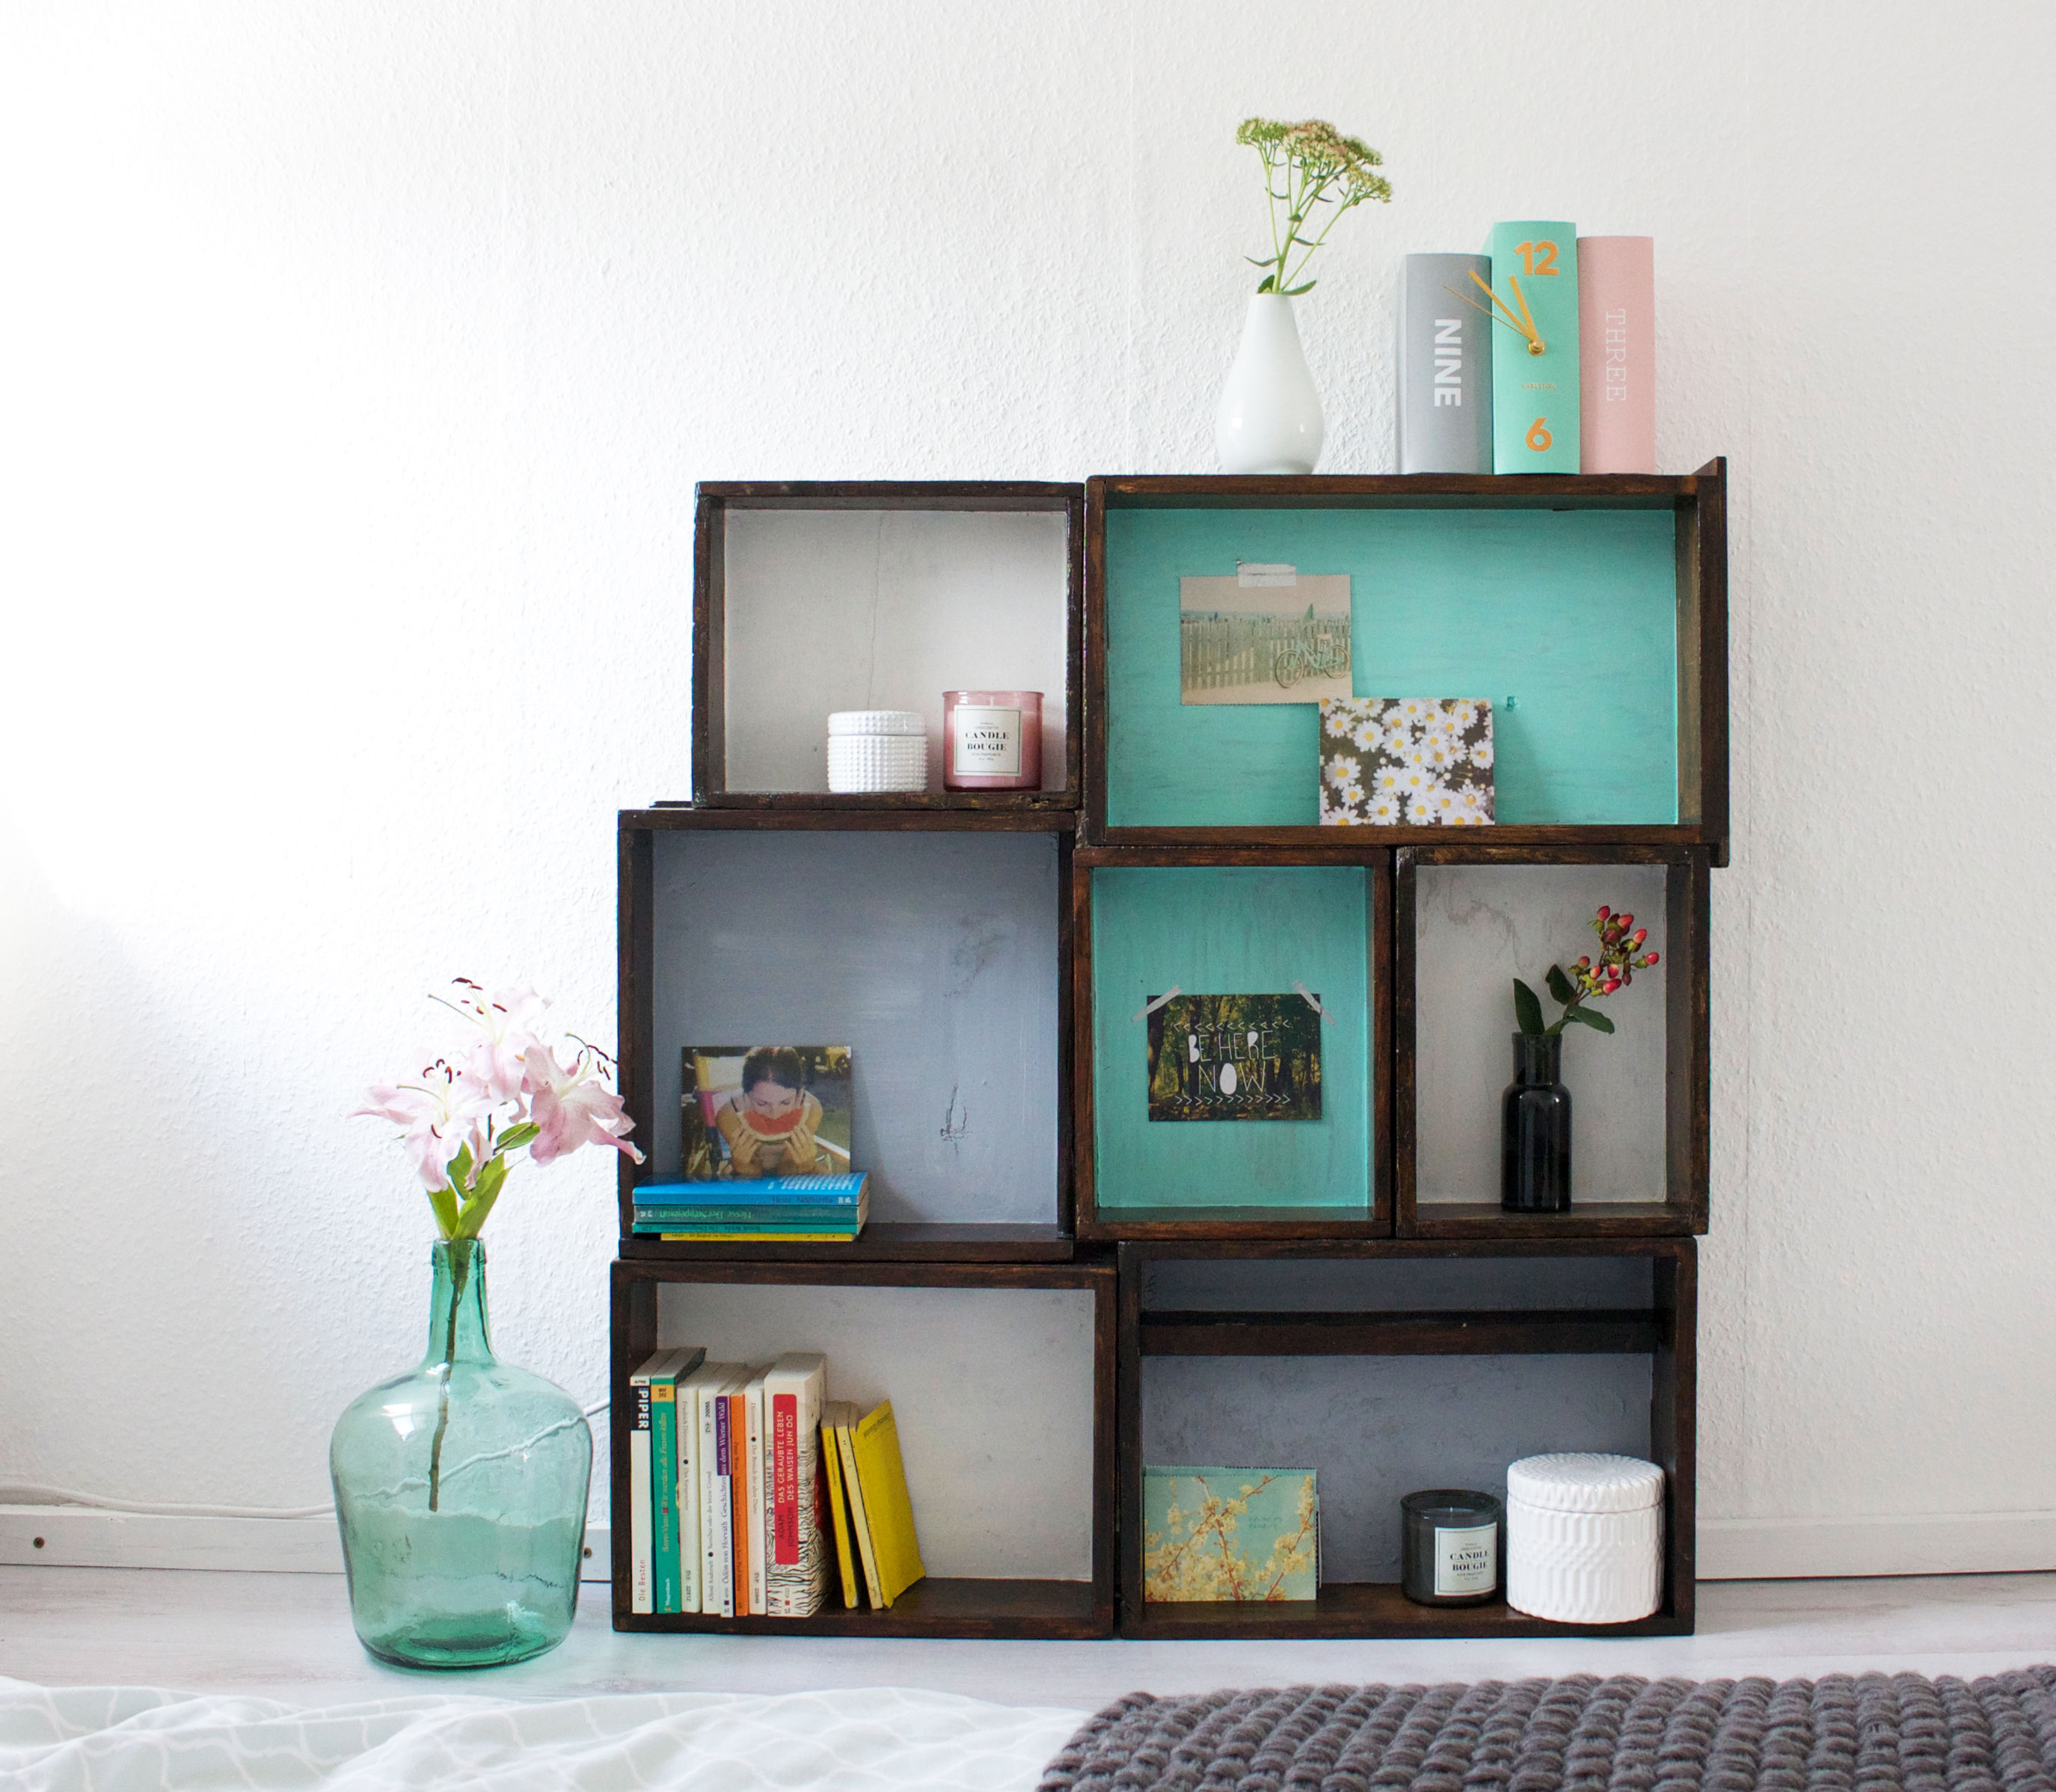 diy | regal aus alten holzkisten - it's pretty nice | interior